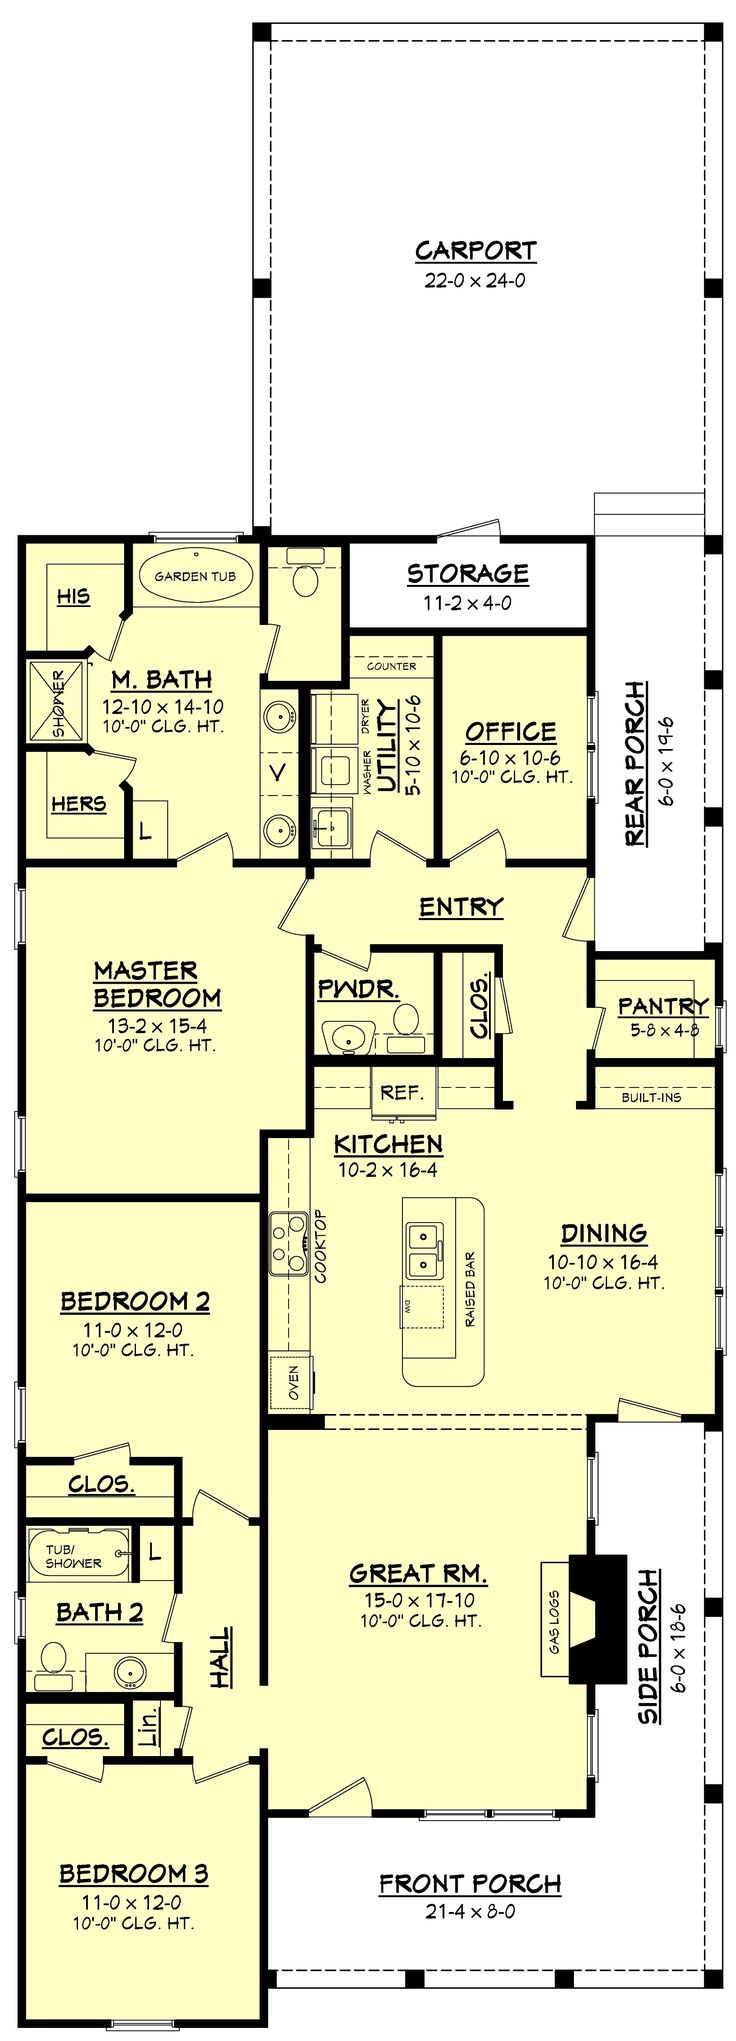 Farmhouse Style House Plan - 3 Beds 2.5 Baths 1825 Sq/Ft Plan #430-86 Main Floor Plan - Houseplans.com